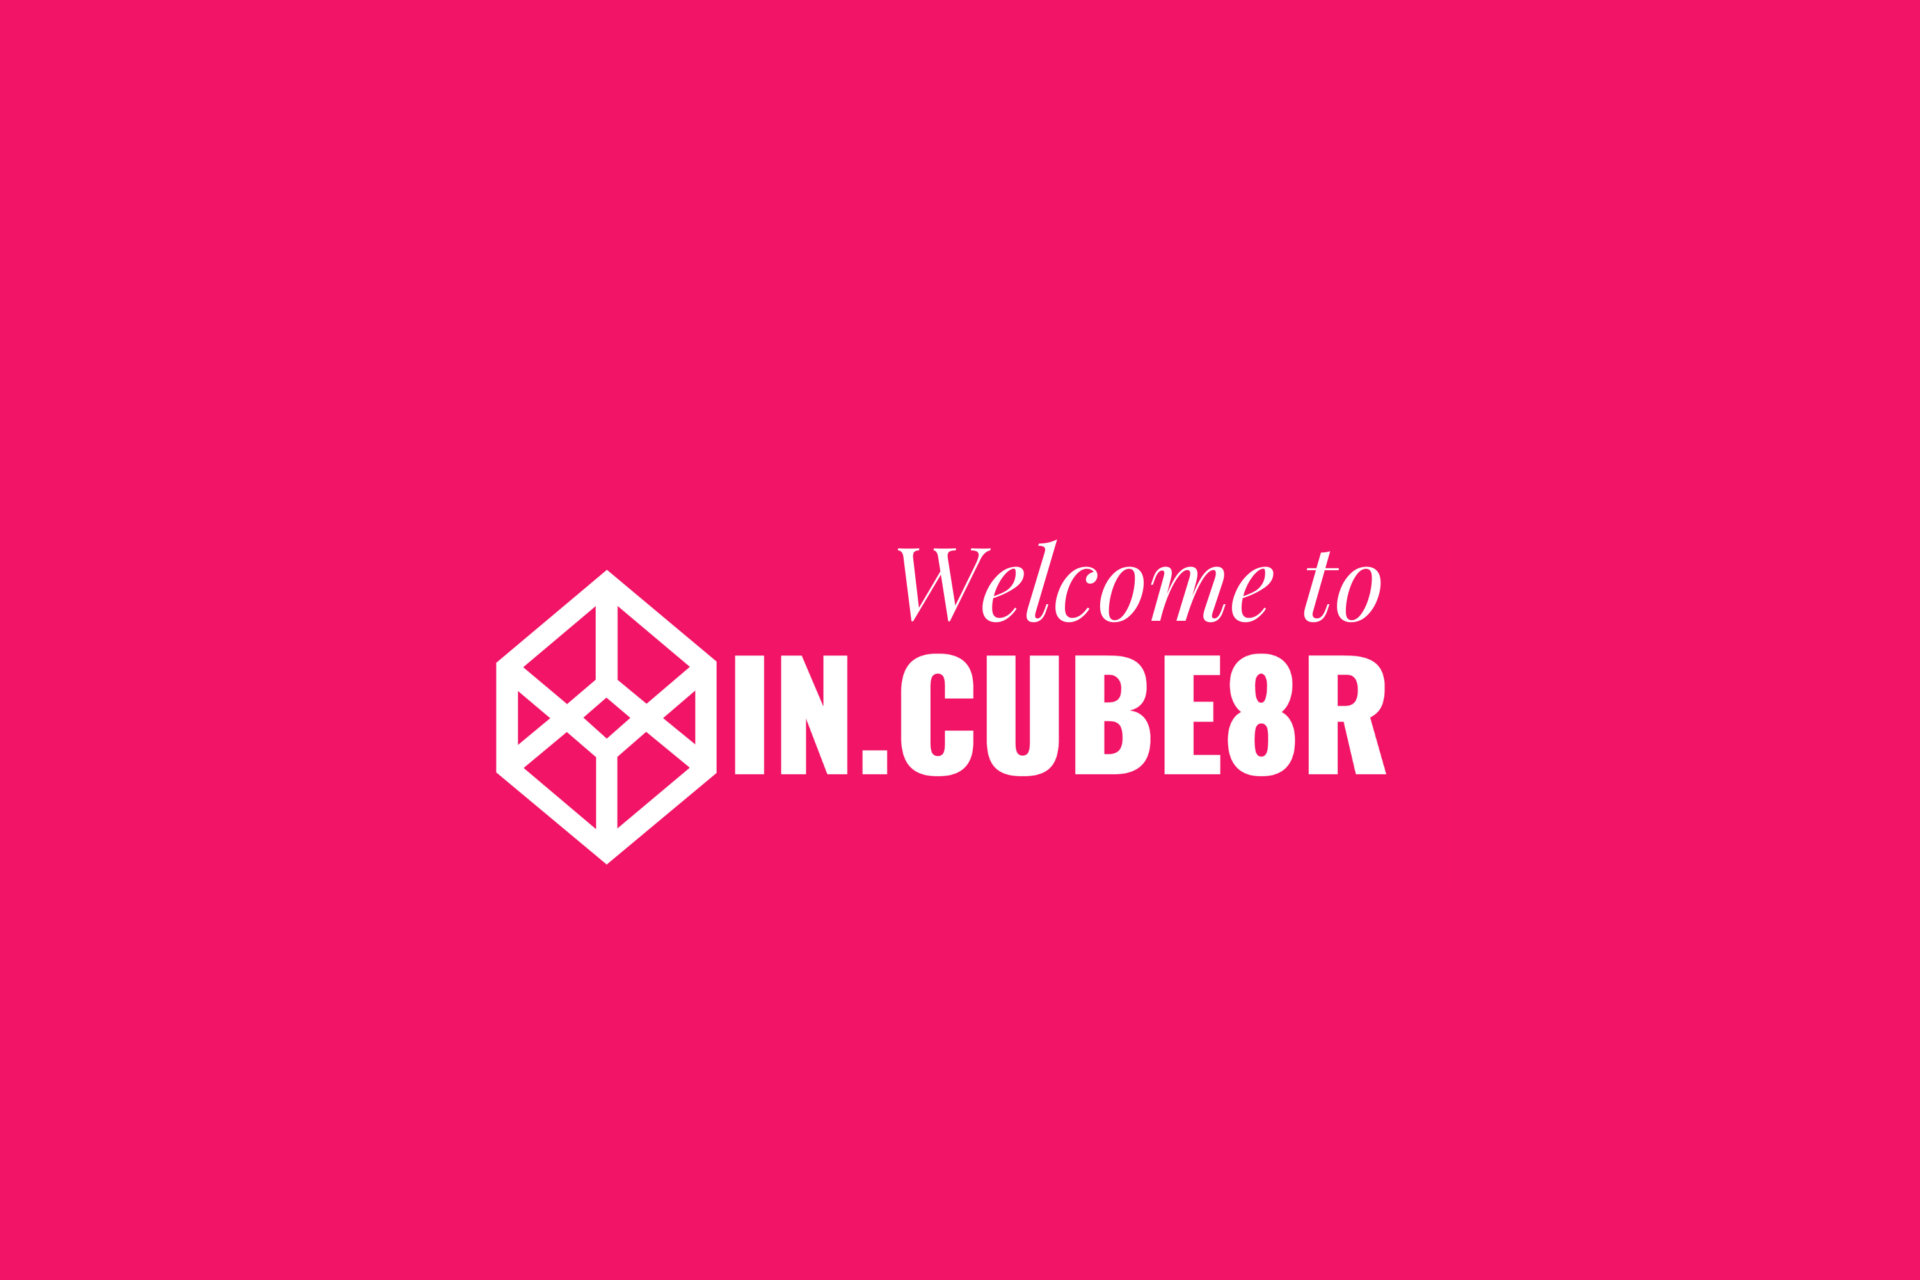 Welcome-to-in.cube8r